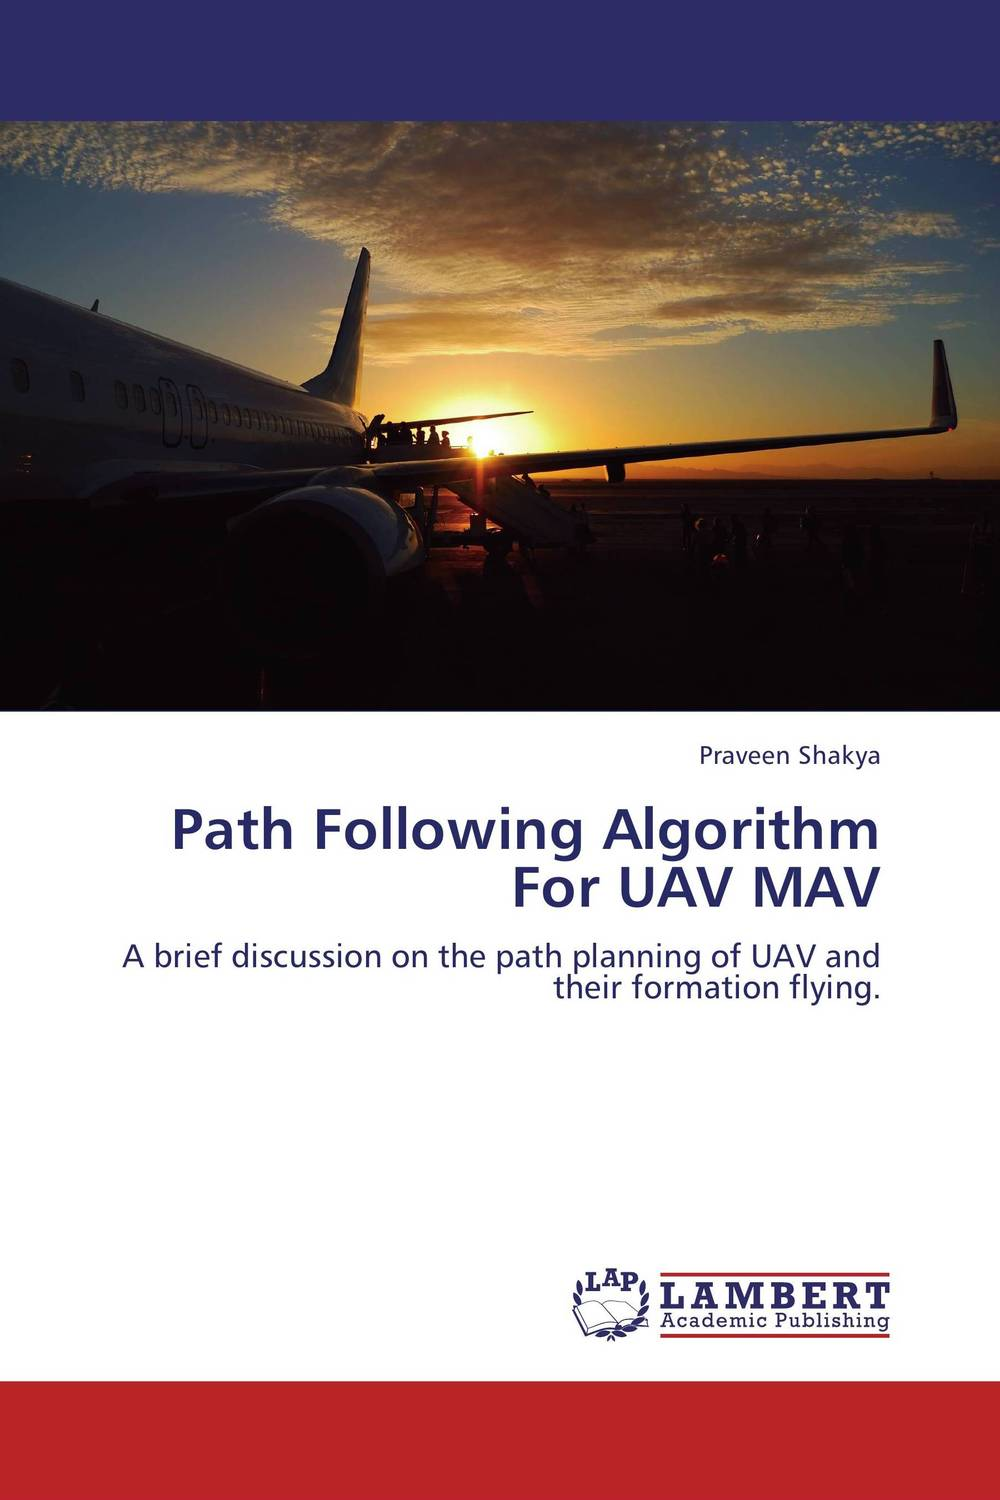 Path Following Algorithm For UAV MAV higher than the eagle soars a path to everest